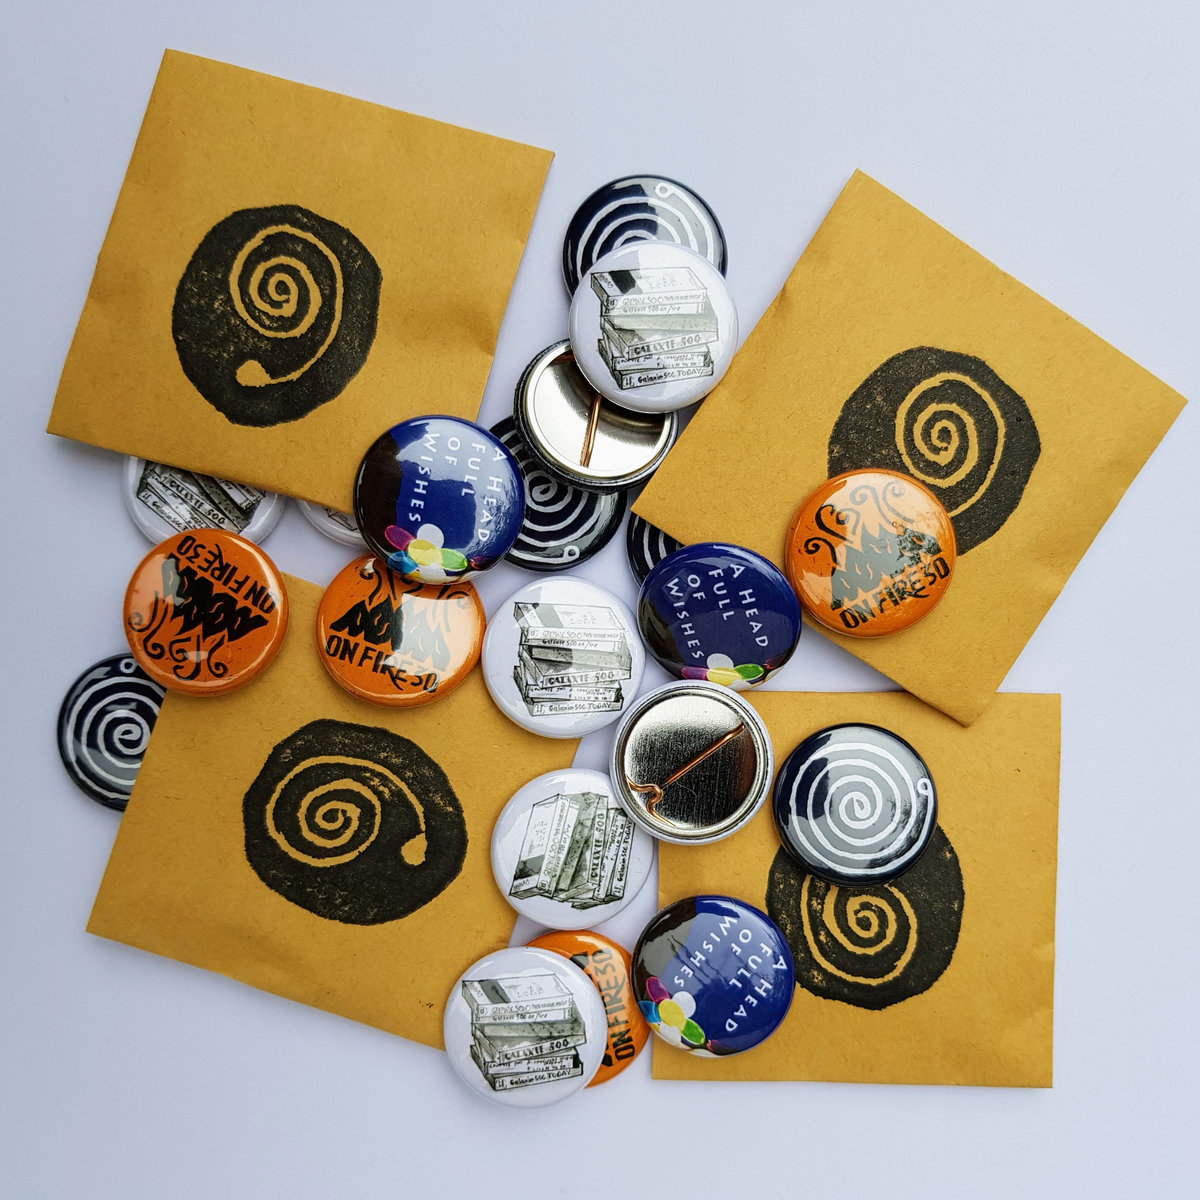 Even the badges come in cute hand-printed Naomi-earring envelopes!